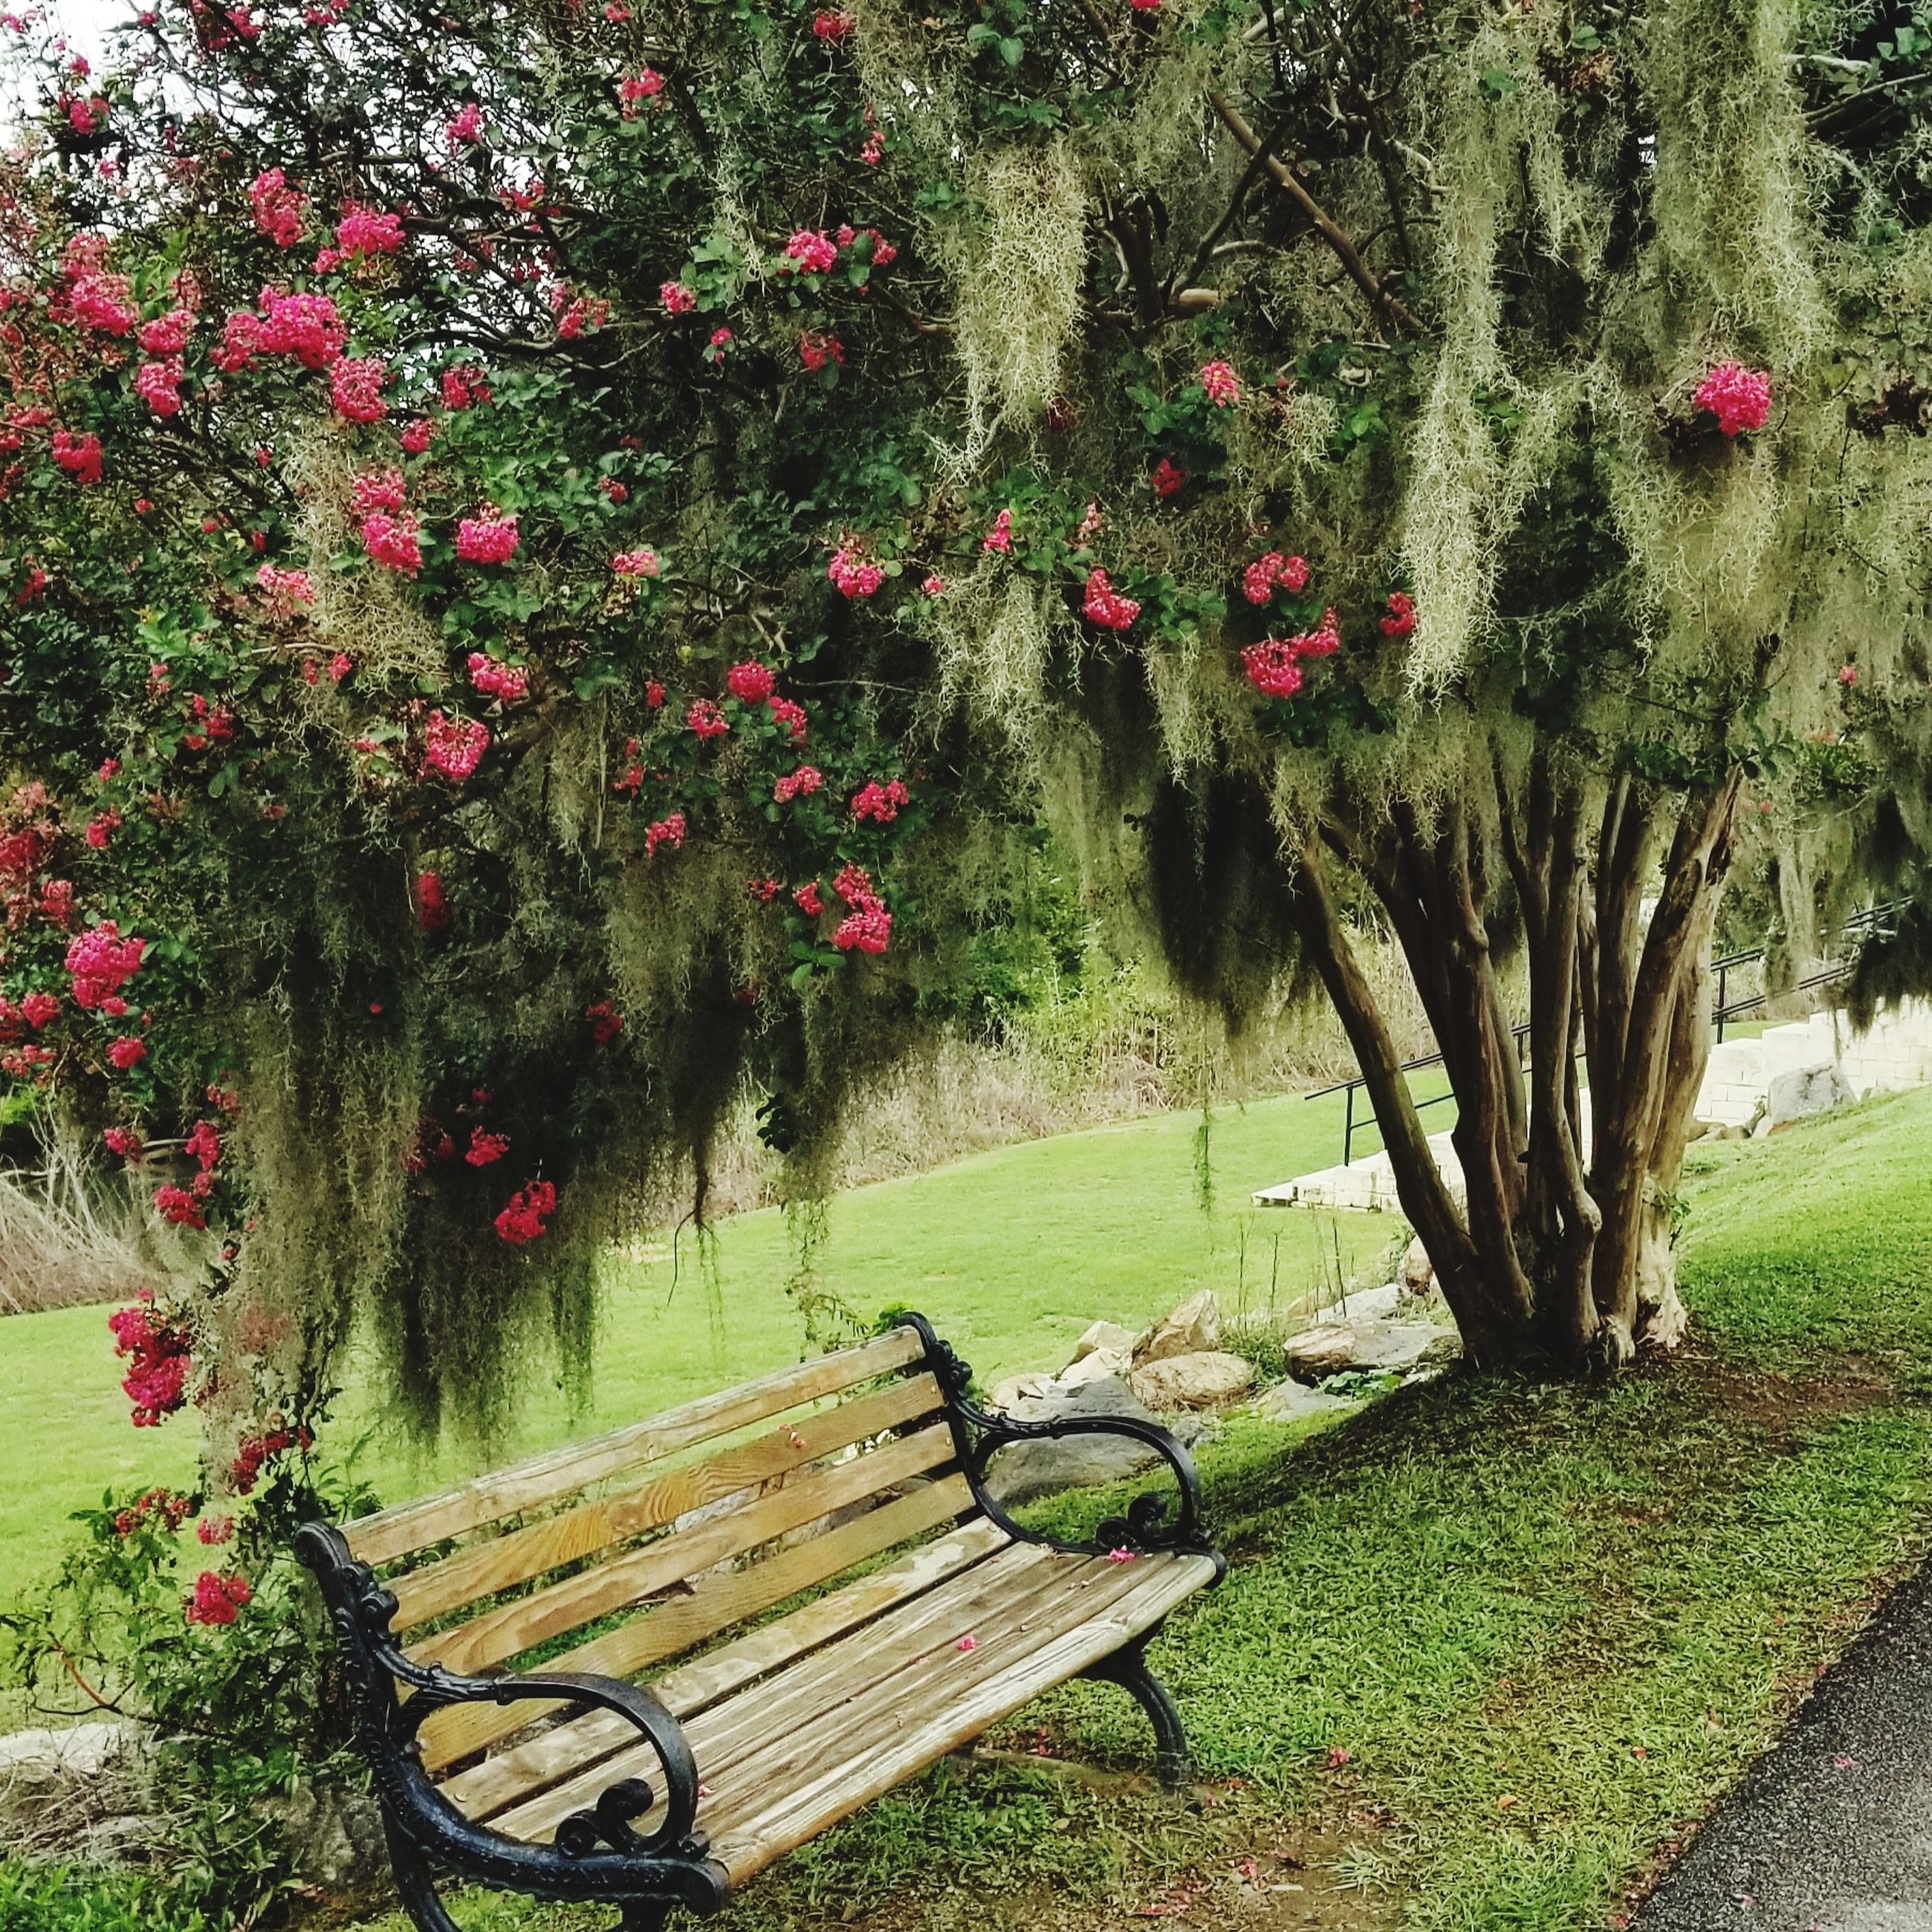 plant, flower, flowering plant, nature, park, growth, beauty in nature, grass, bench, tree, no people, park - man made space, seat, garden, green color, outdoors, day, red, wood - material, relaxation, park bench